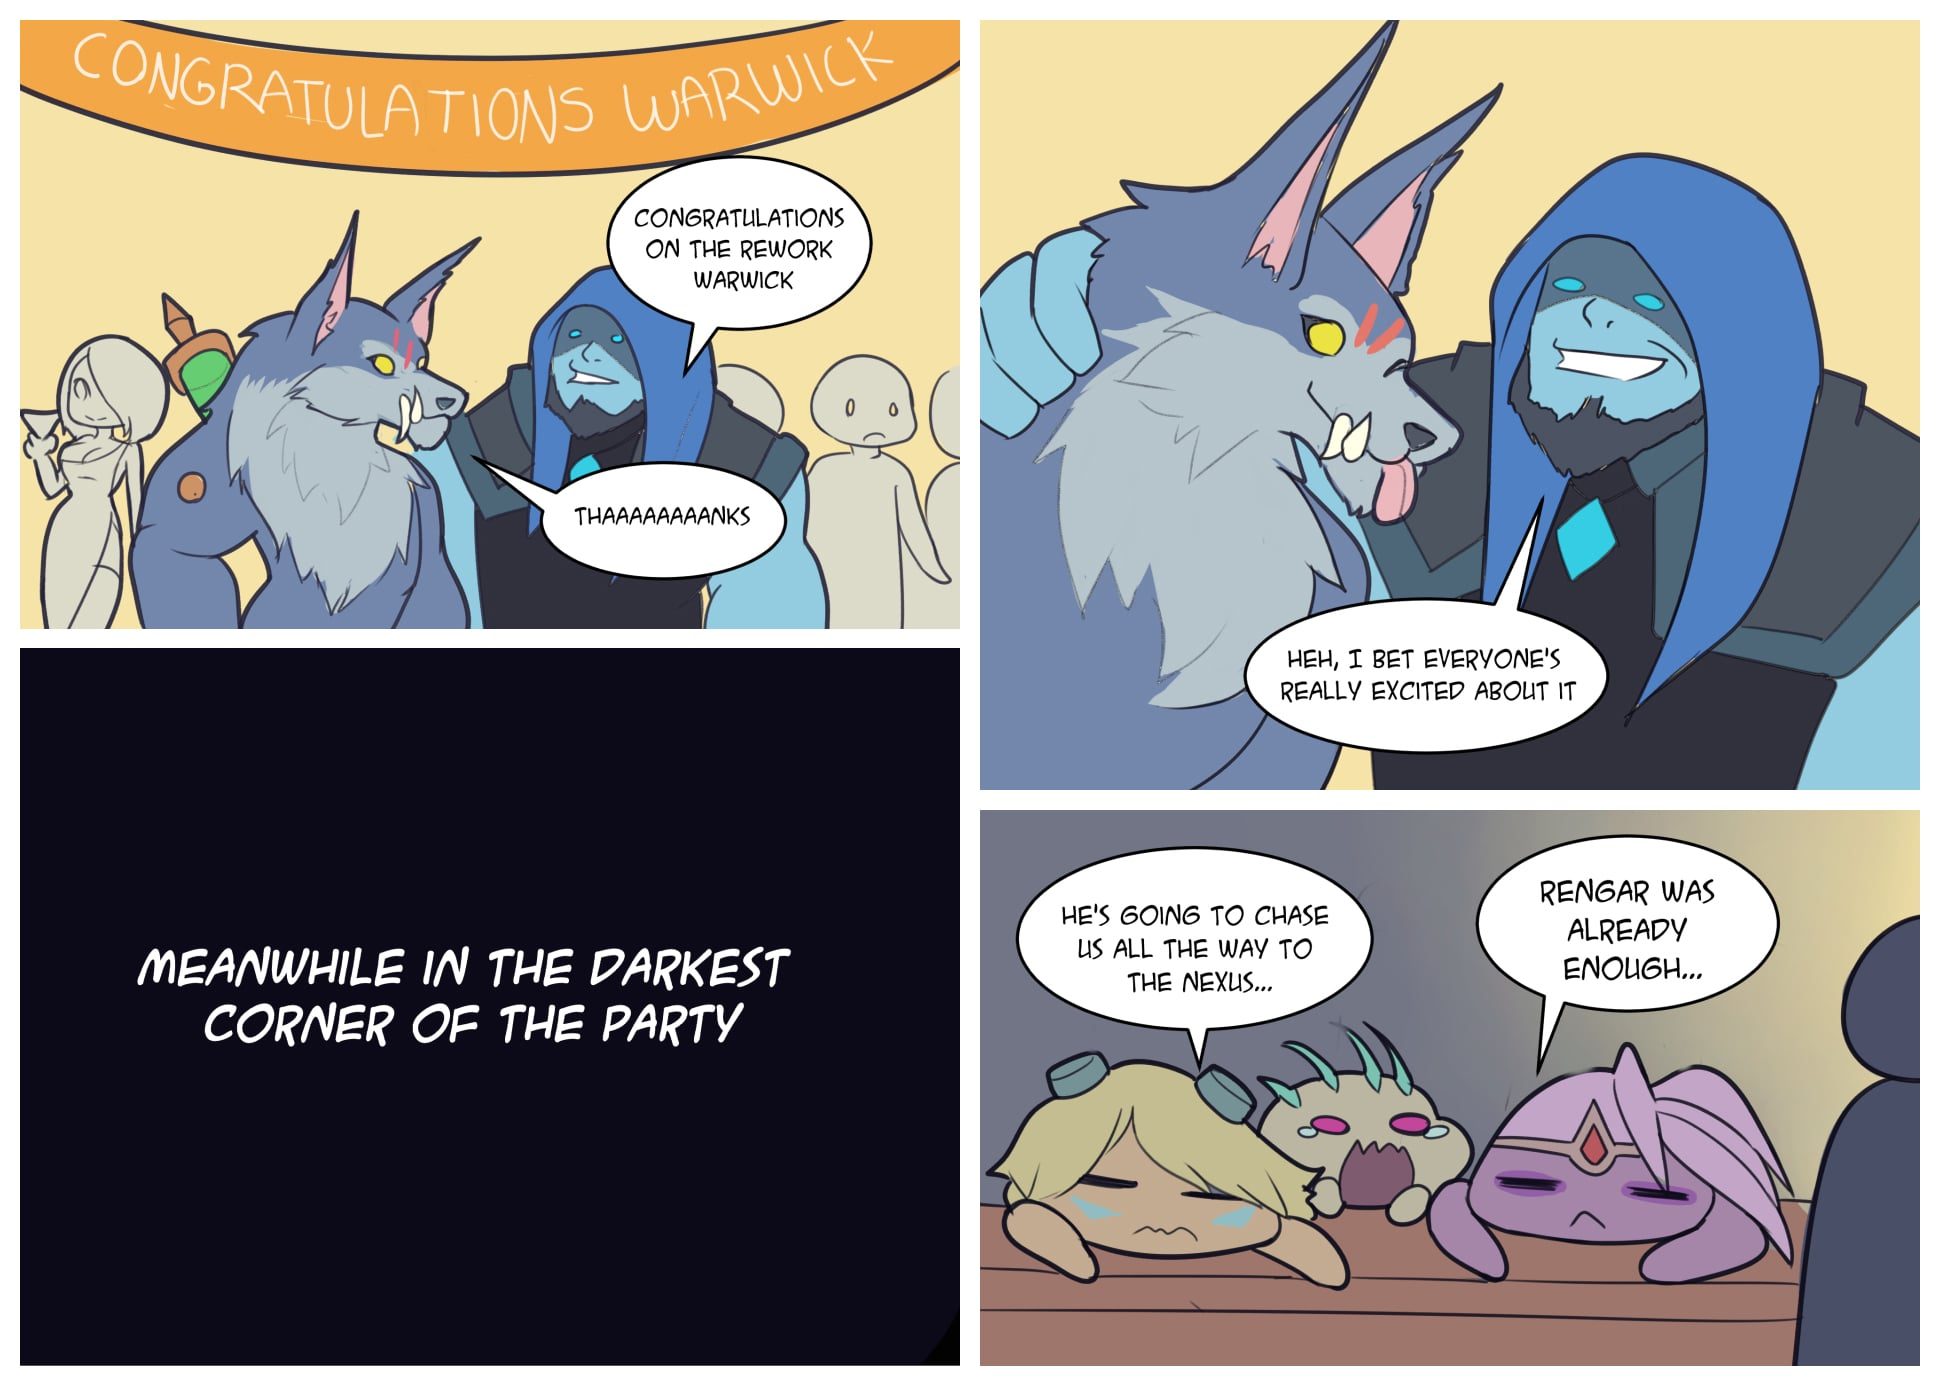 Comic by Dream Vessel (http://www.dream-vessel.com/post/155862176323/lolwarwick-rework)